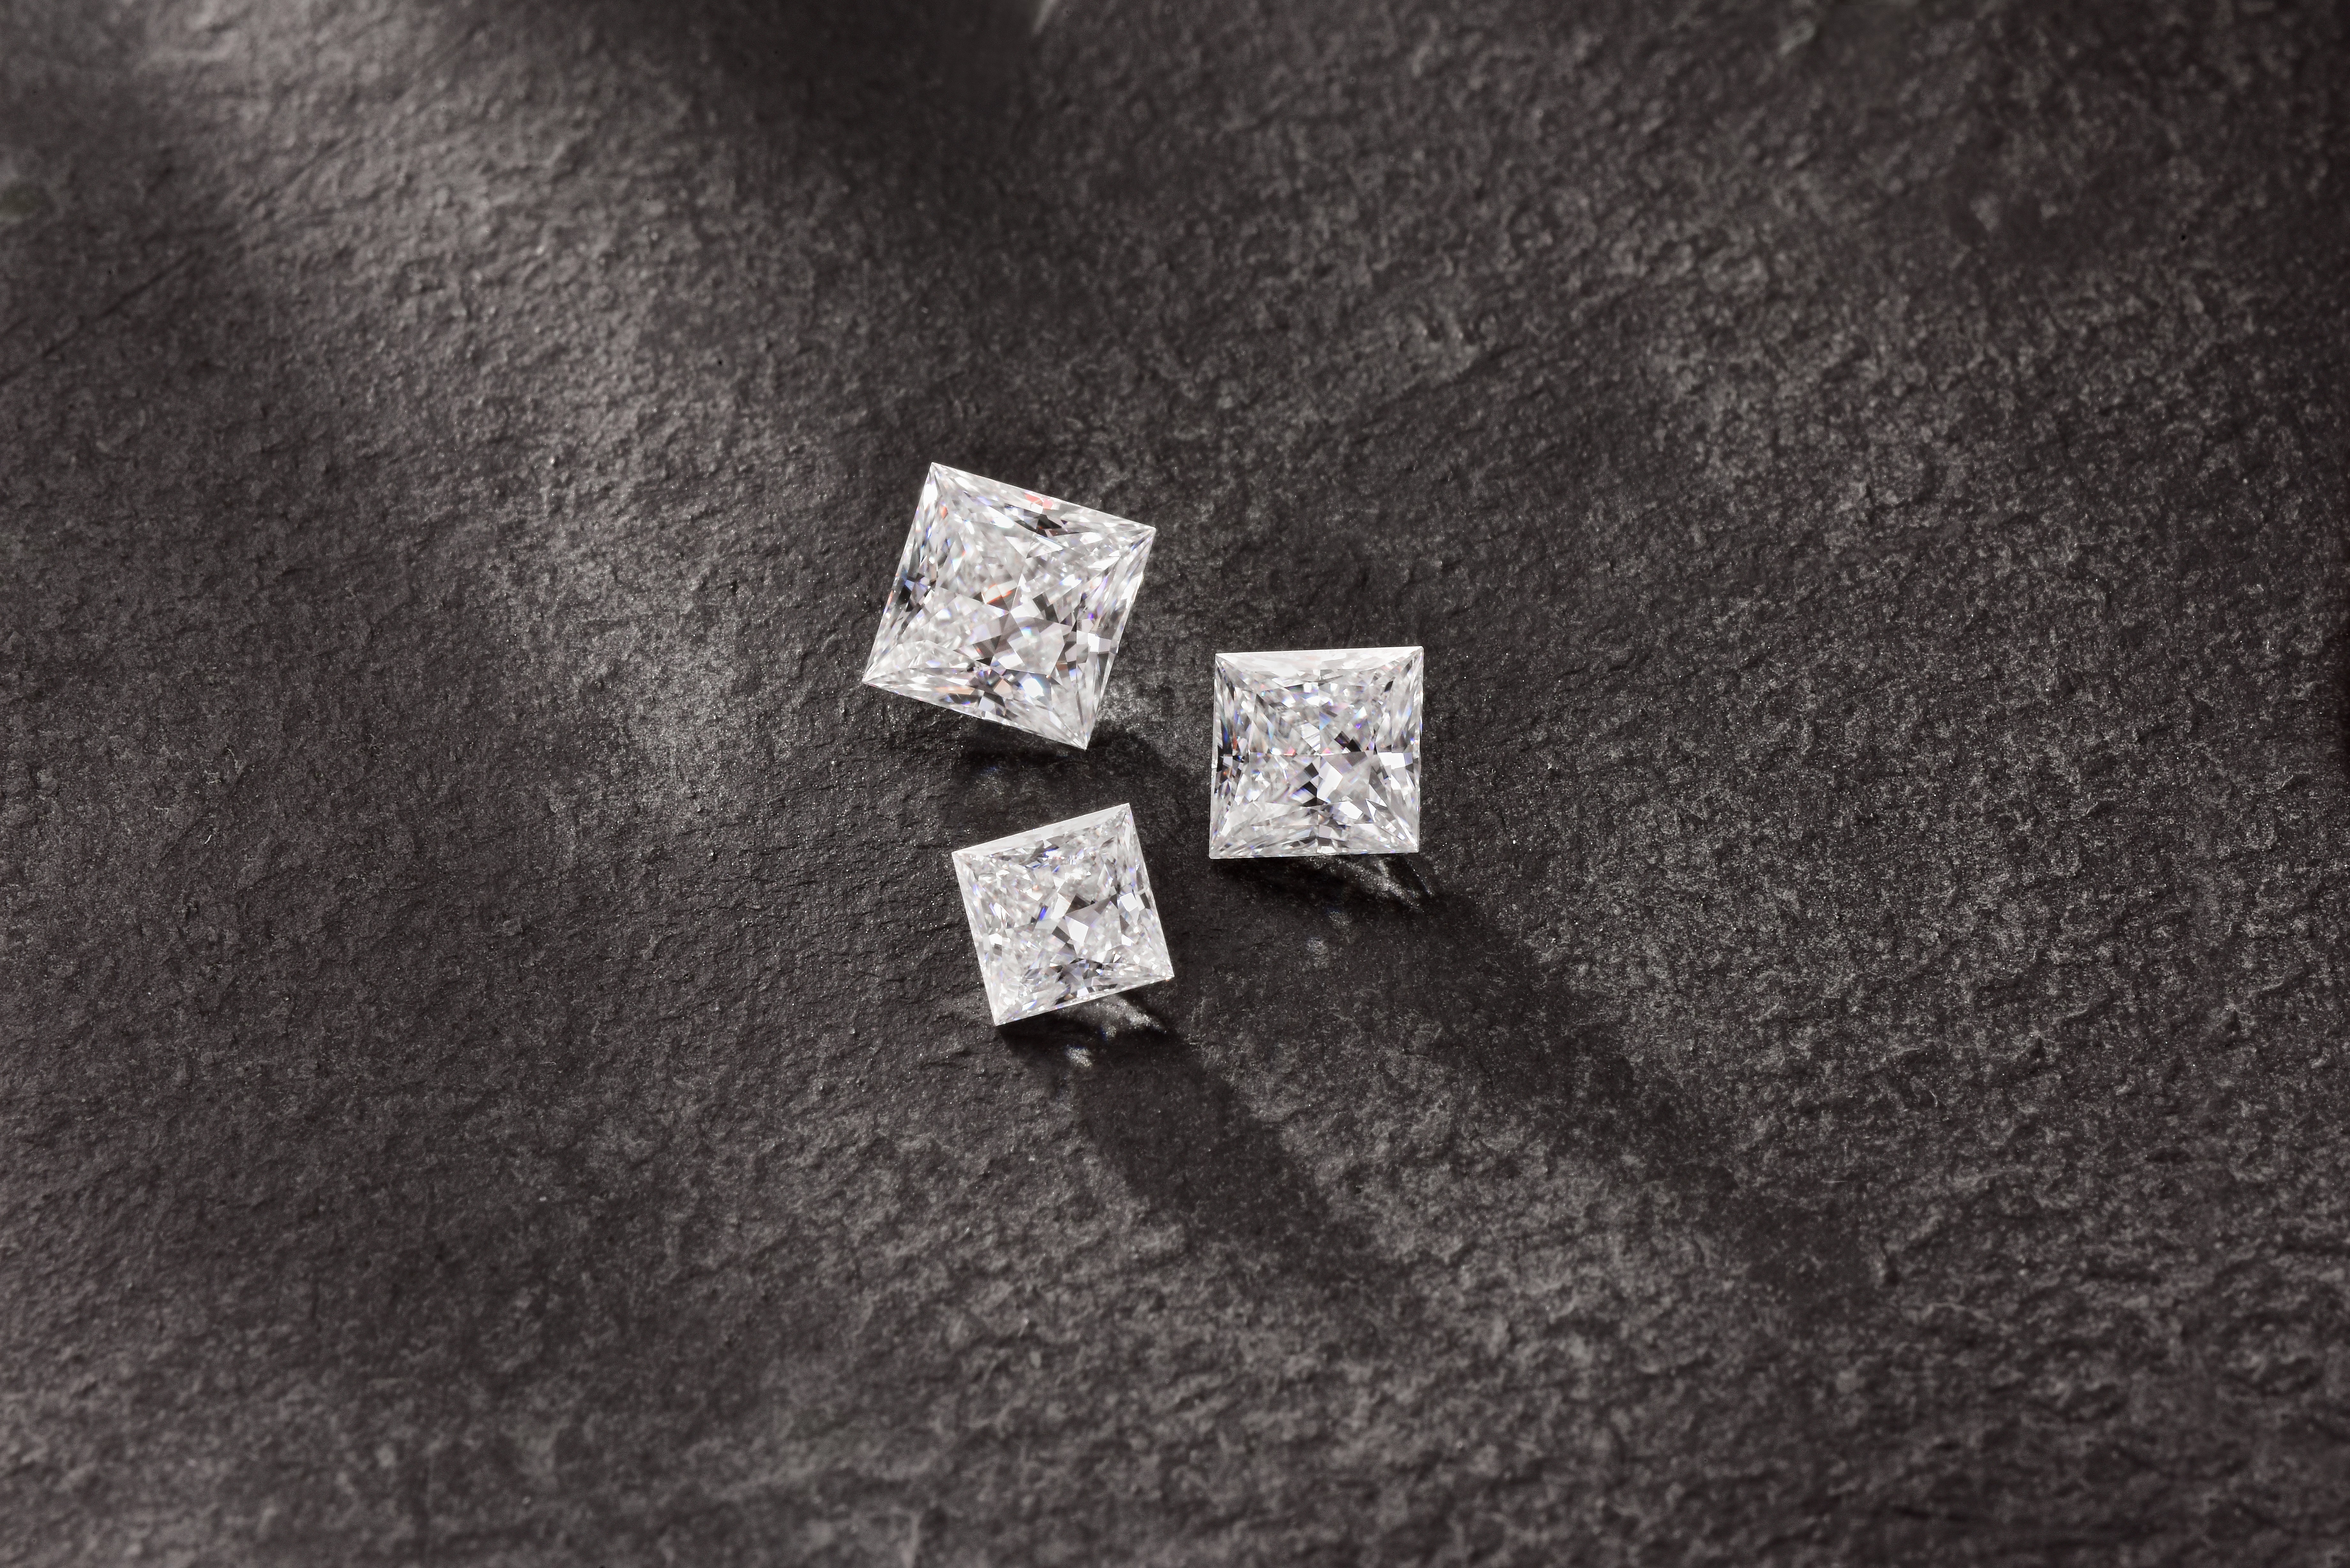 Charles & Colvard Forever One Moissanite Princess Cut Gemstones (Photo: Business Wire)